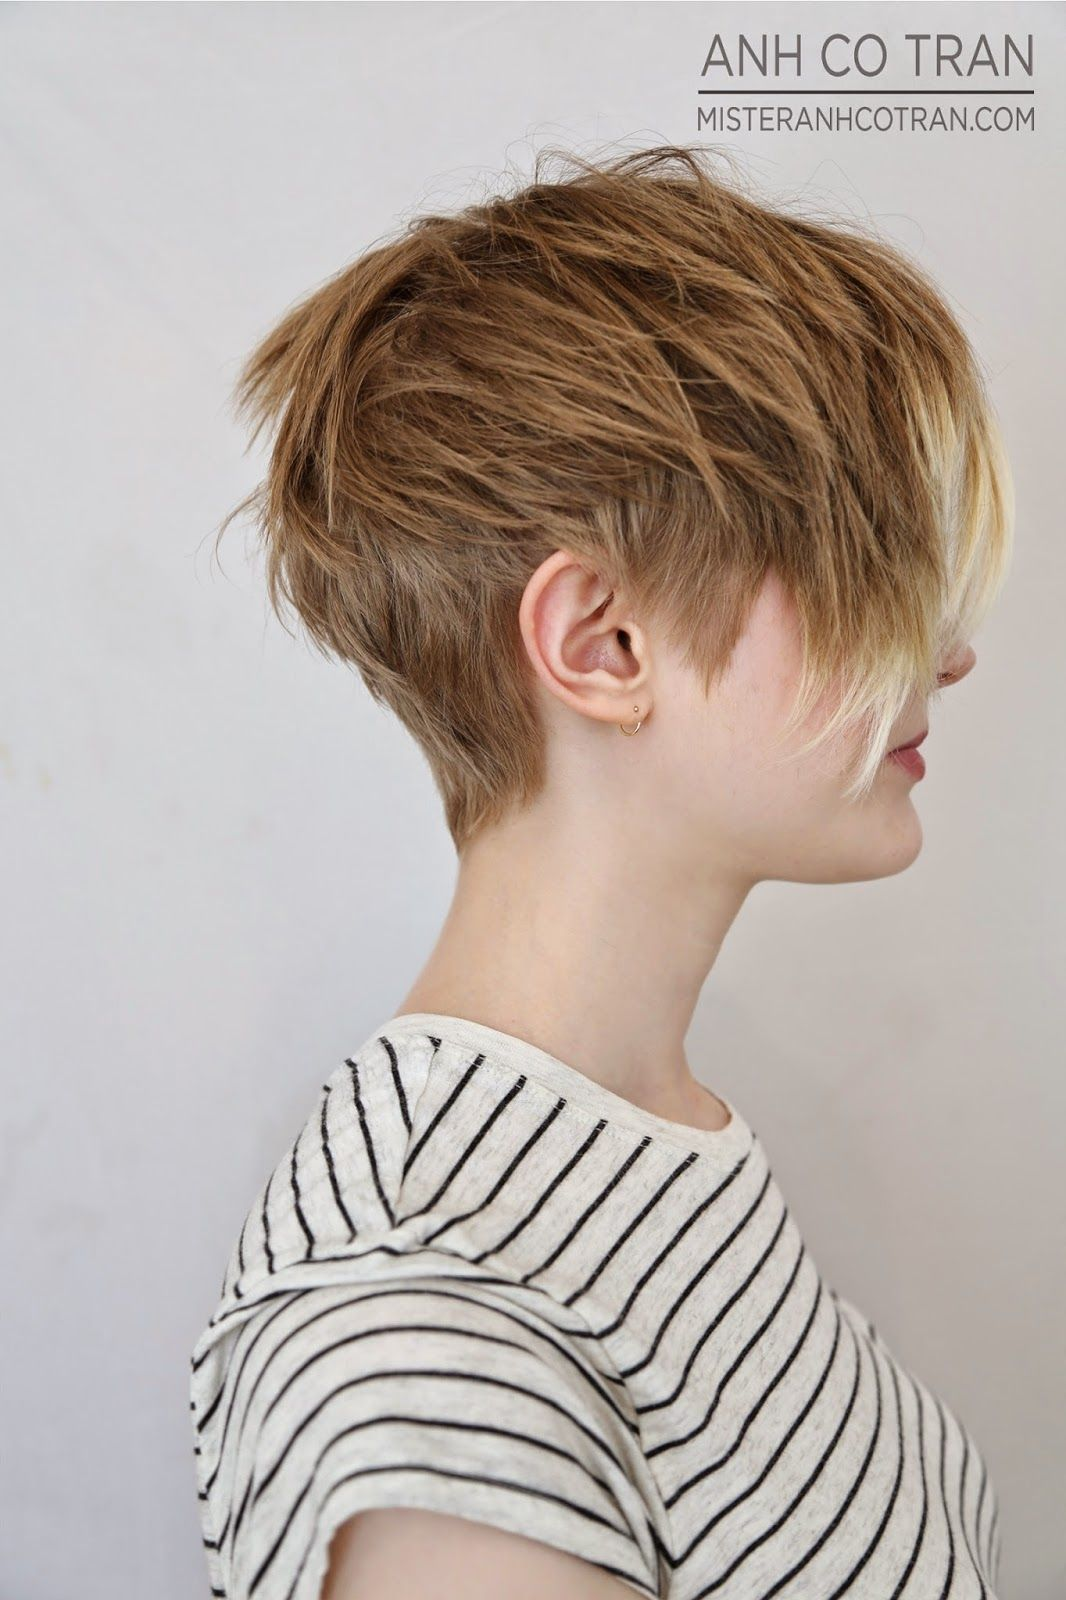 Short Hair Saturday Cutstyle Anh Co Tran Appointment Inquiries